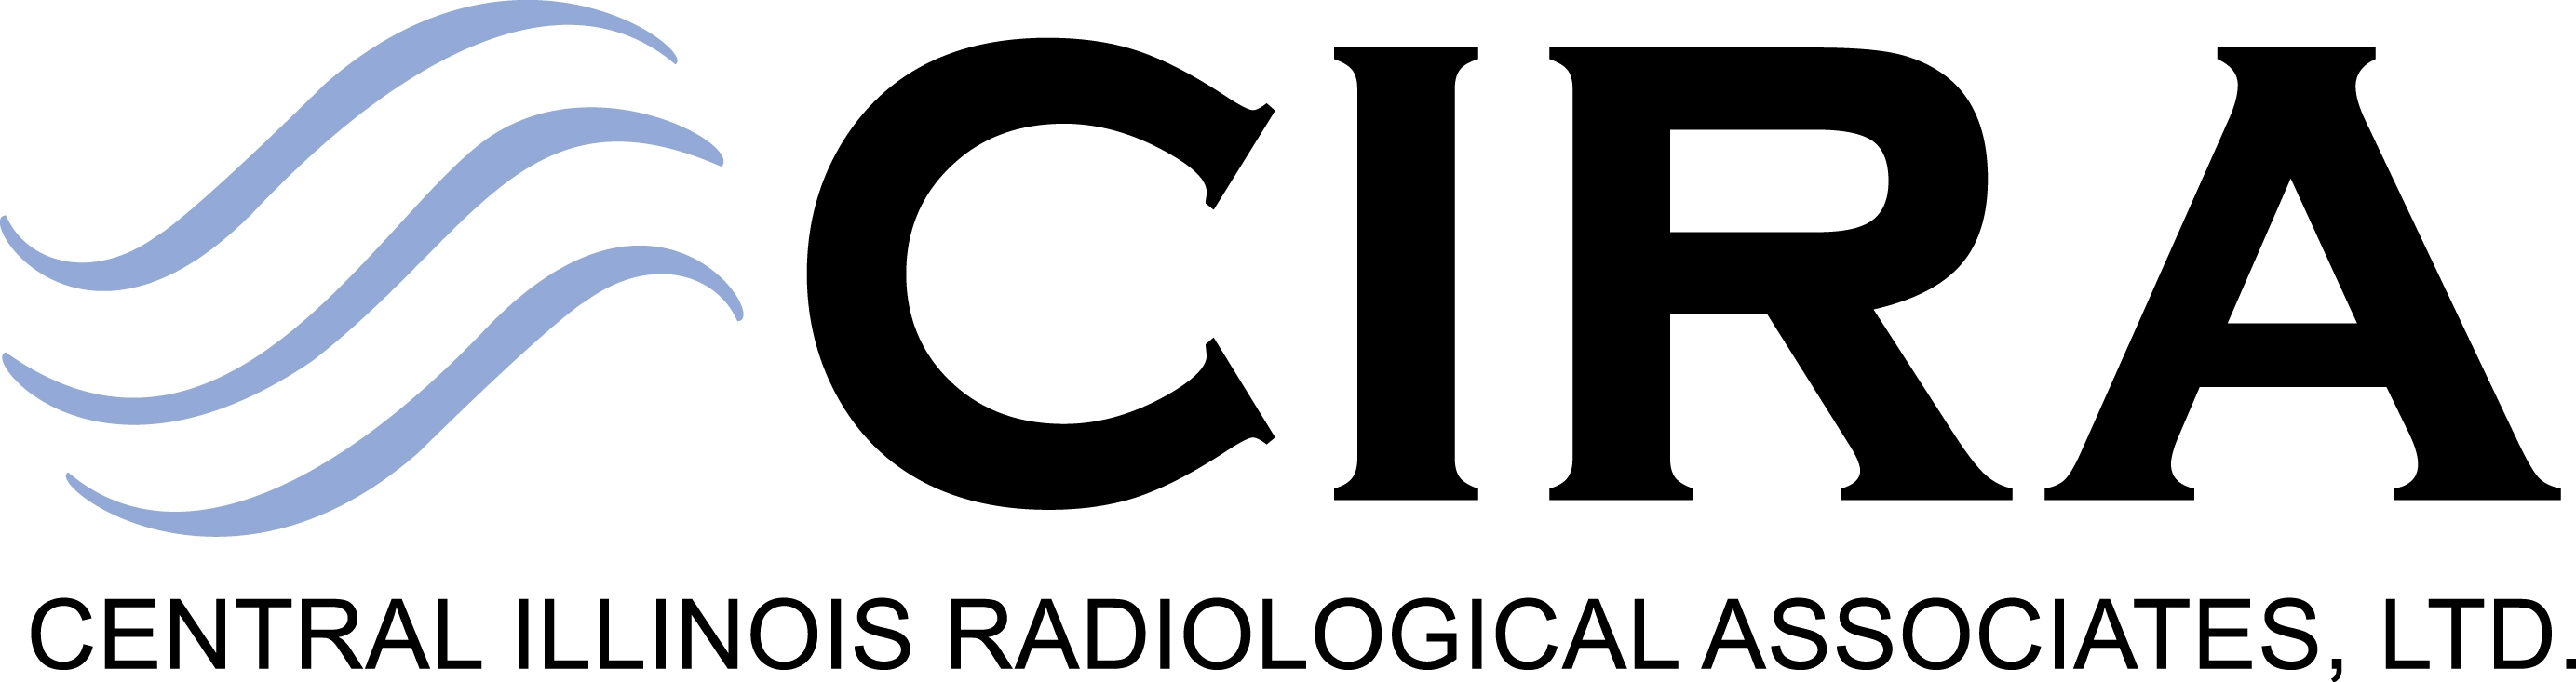 Central Illinois Radiological Associates, Ltd.